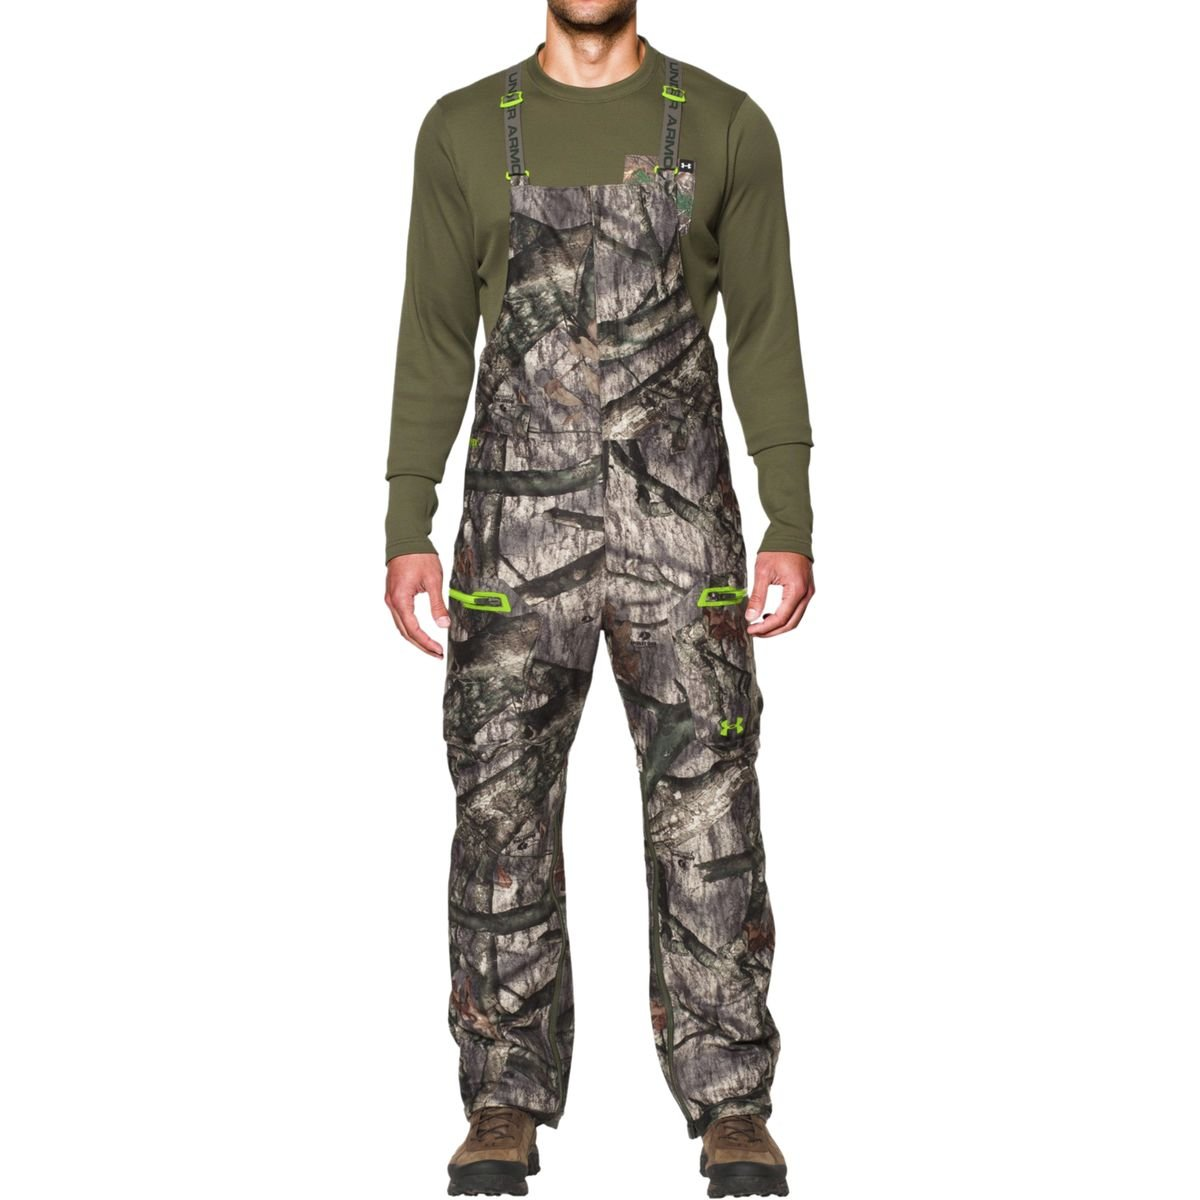 79ab2c878ebfb Cheap under armour camo bib overalls Buy Online >OFF66% Discounted